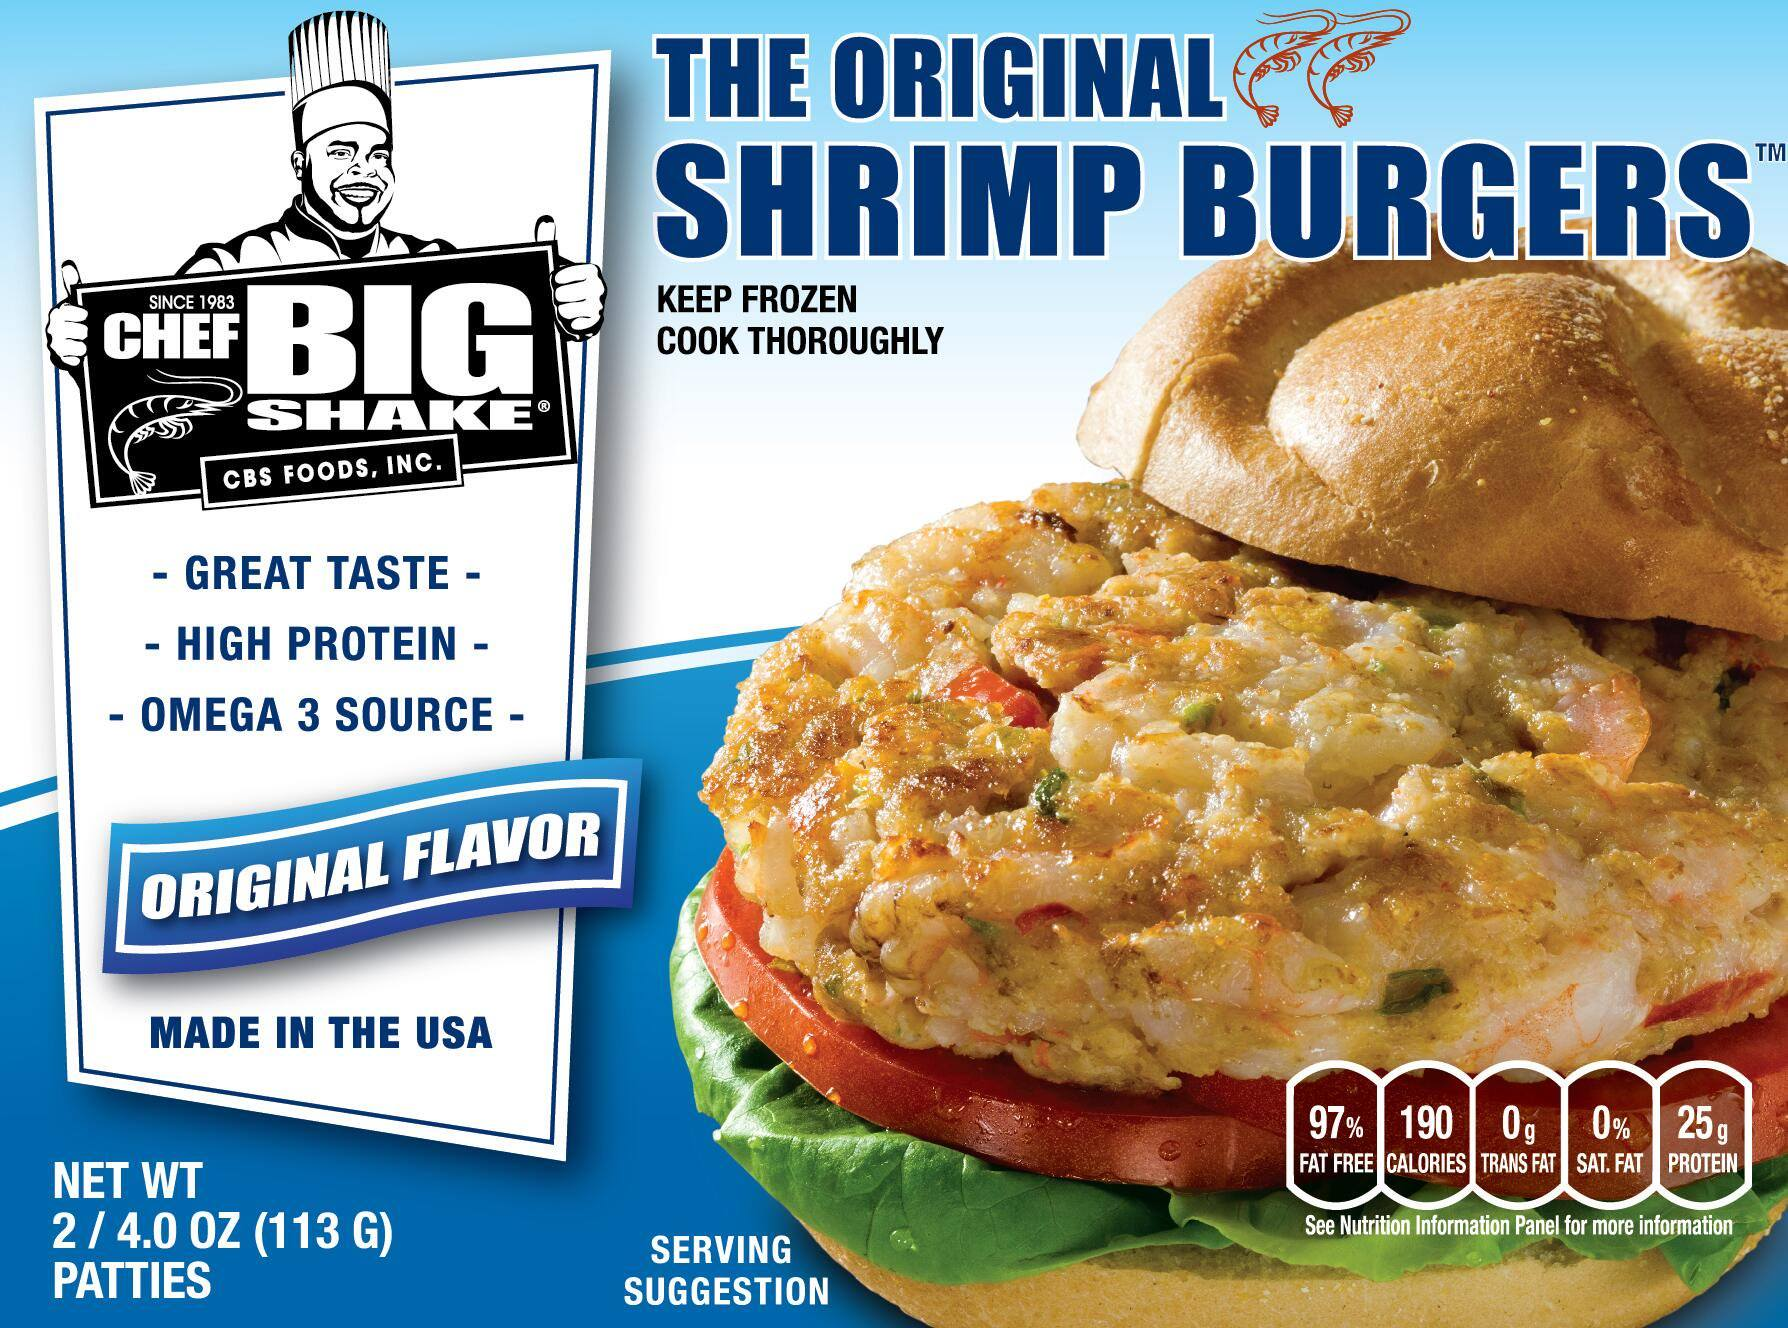 Chef Big Shake shrimp burger